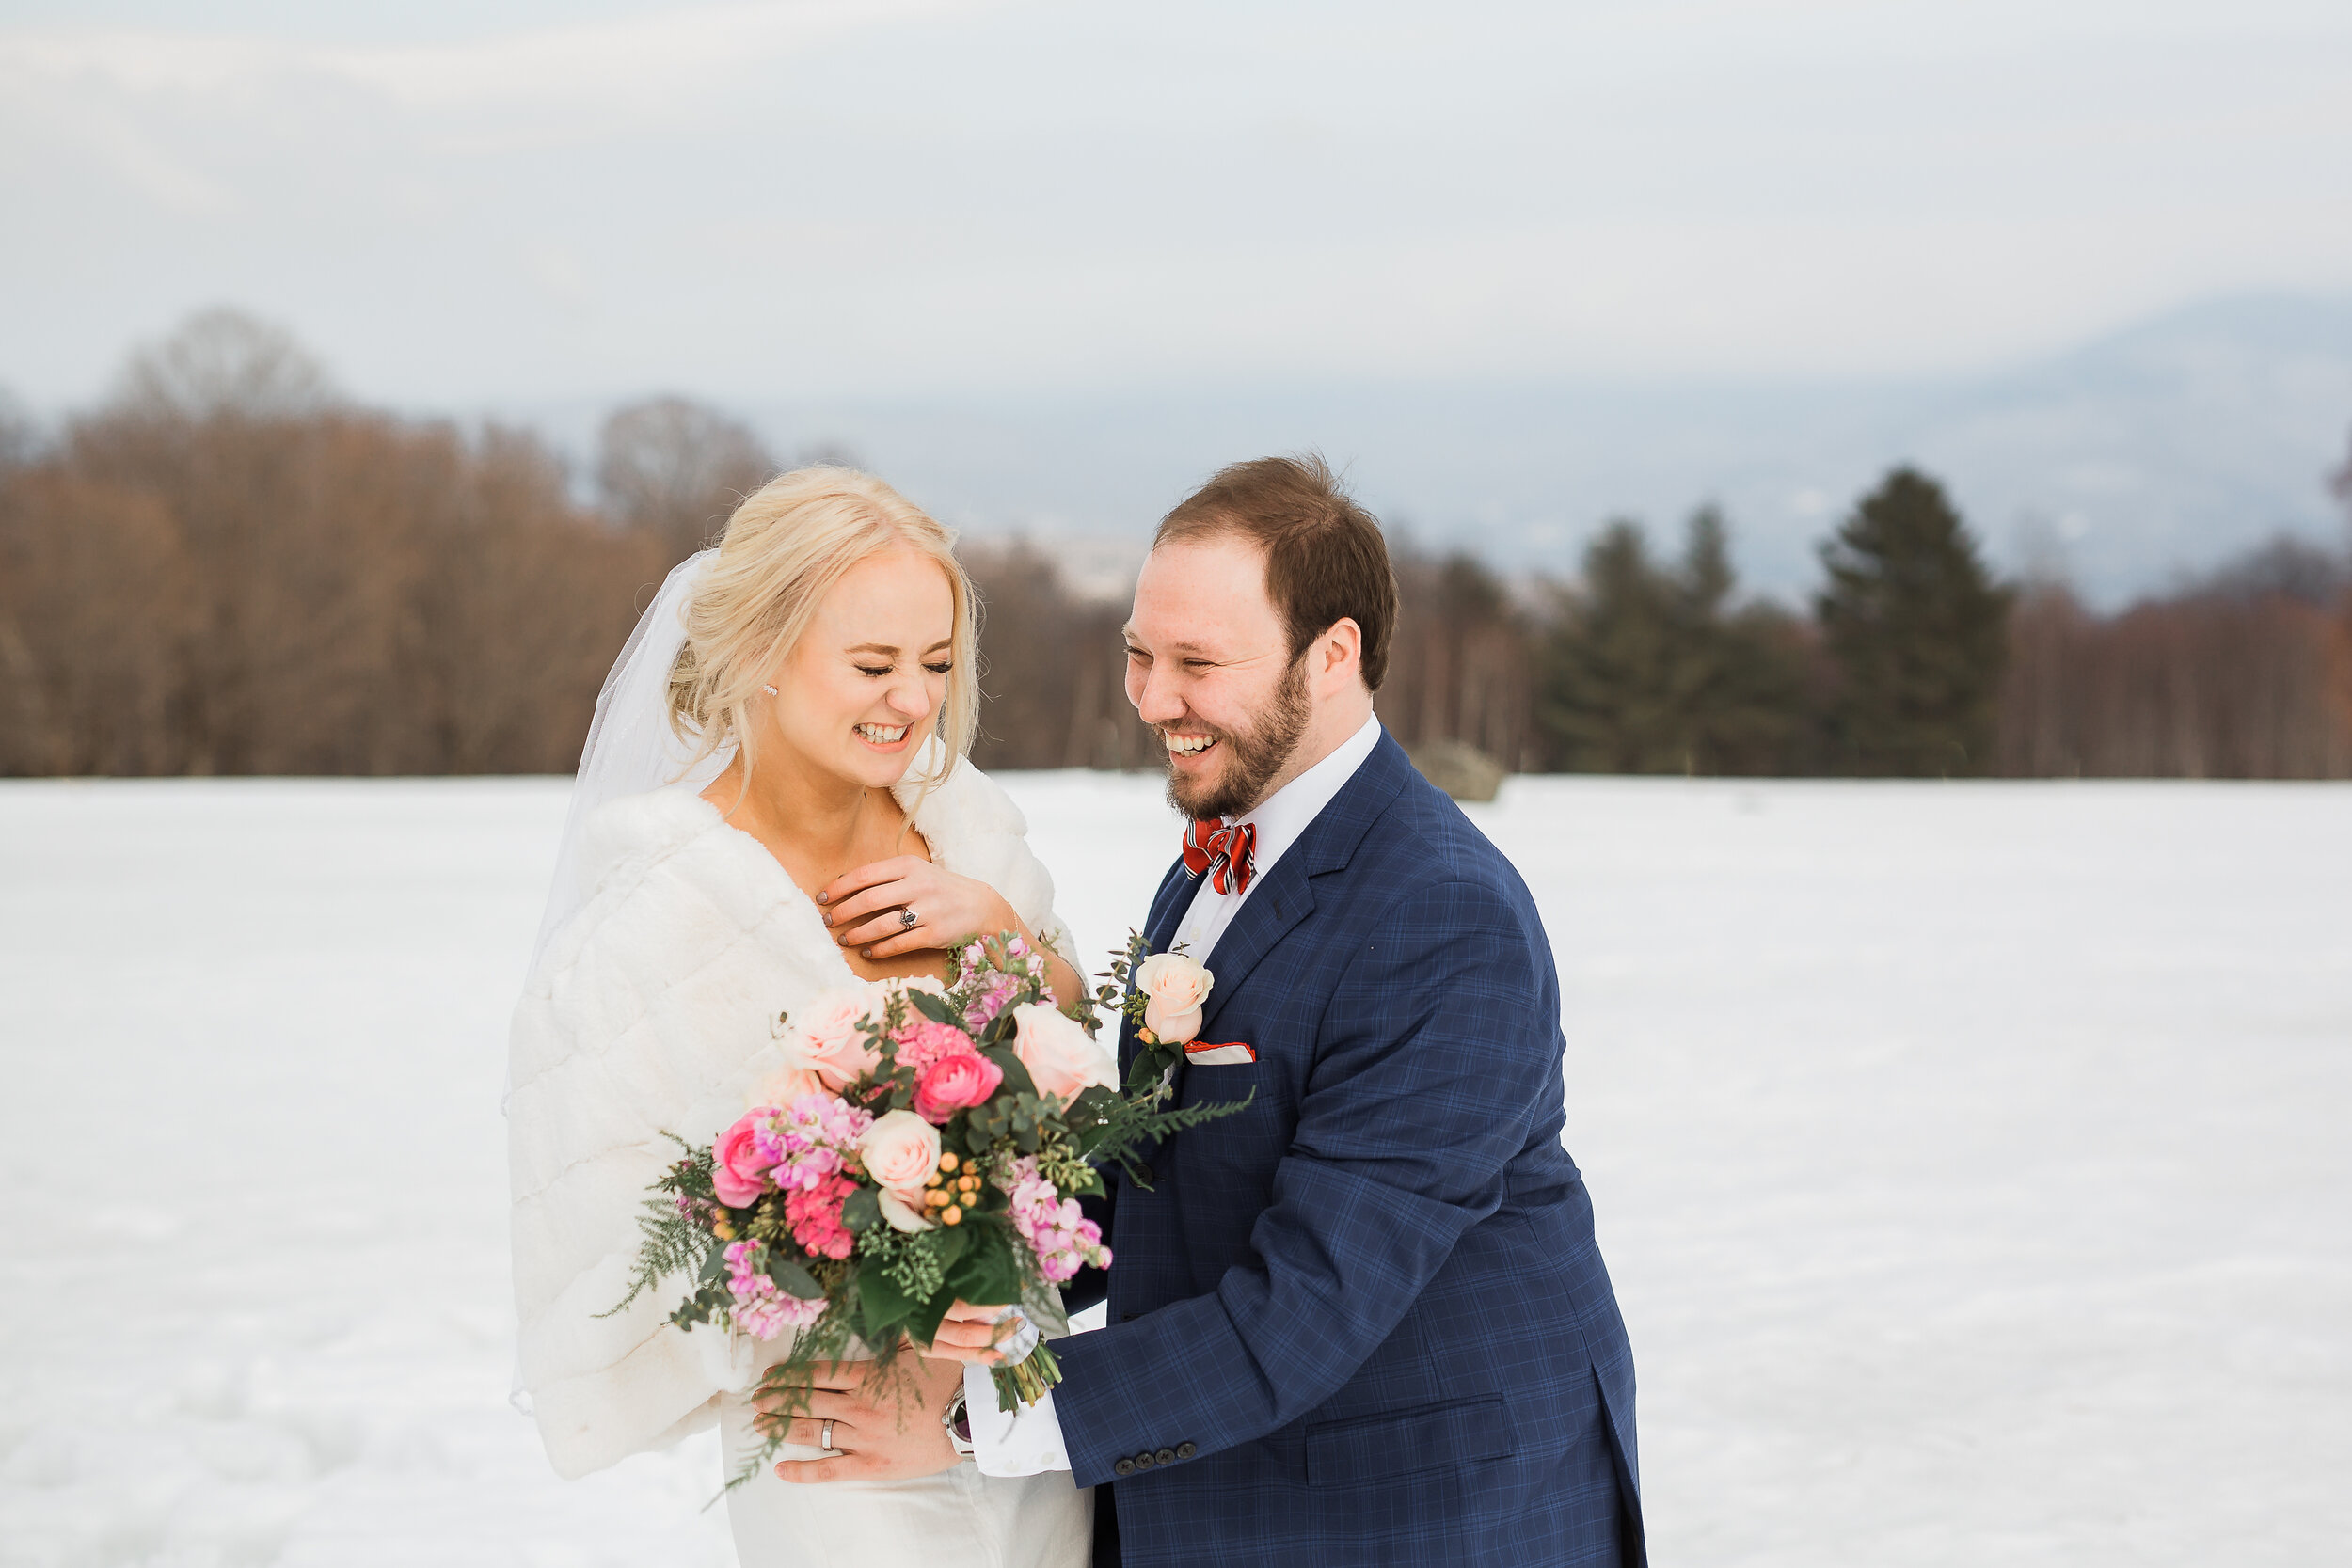 Trapp Family Lodge Winter Micro Wedding